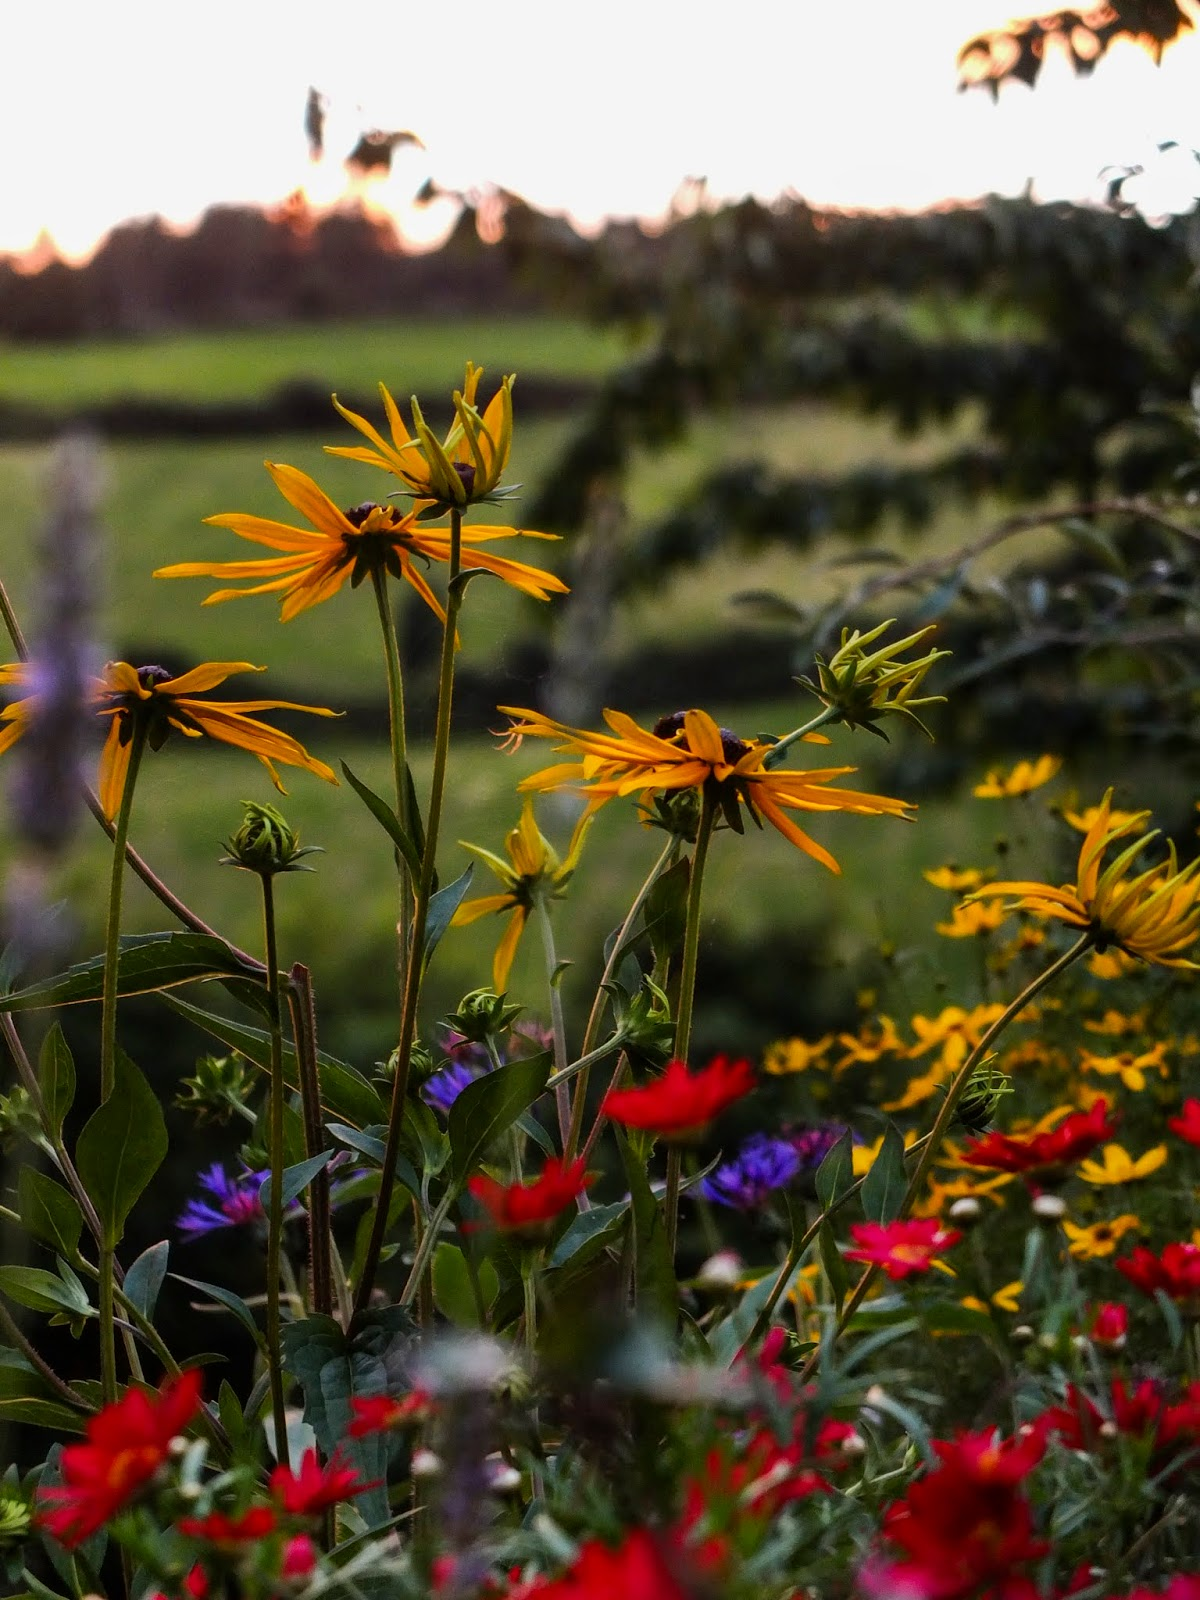 Different types and colours of flowers at sunset.